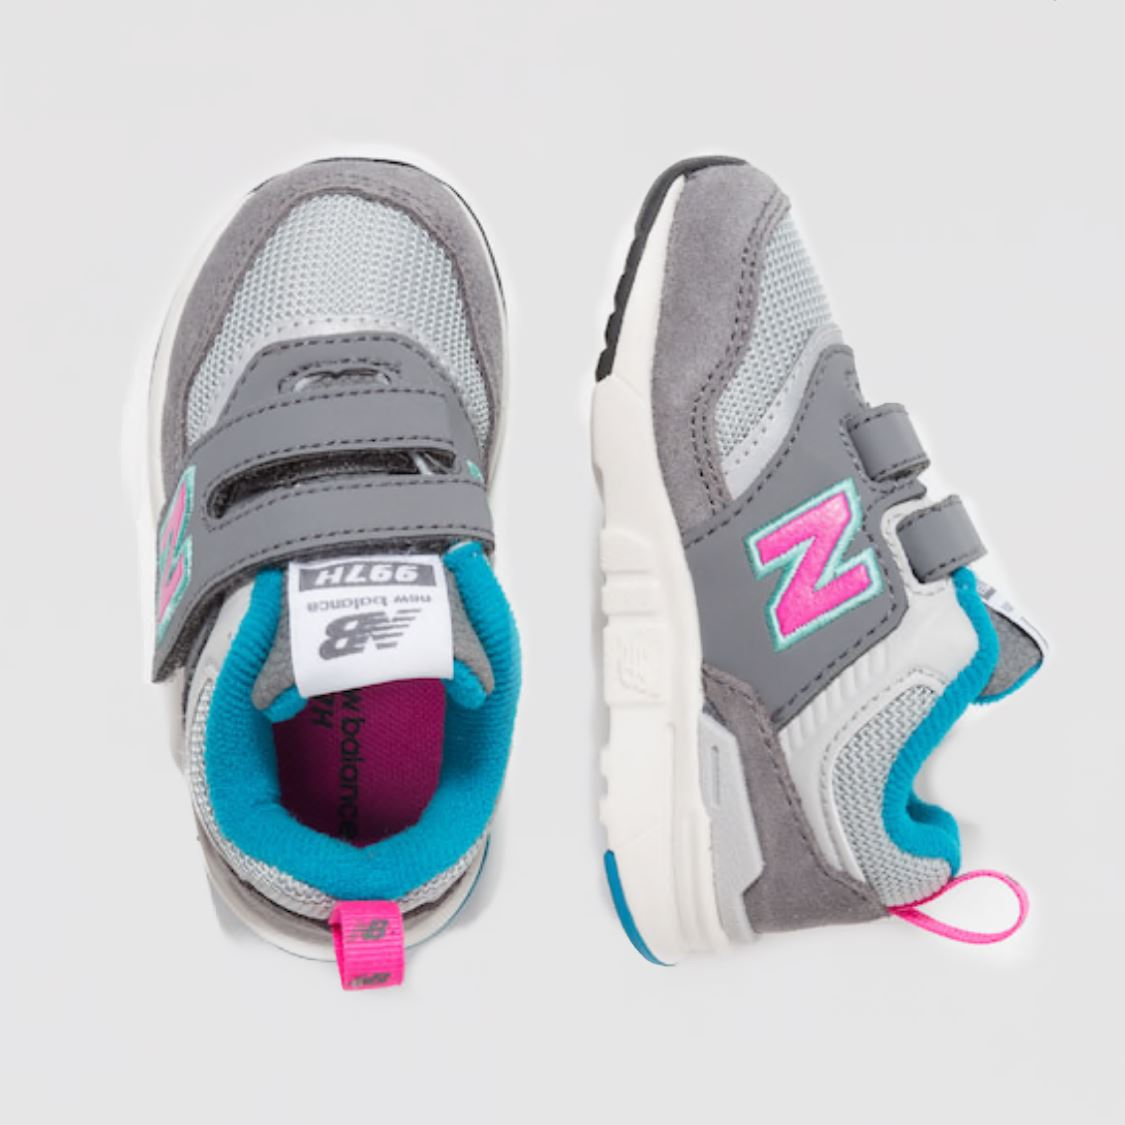 New Balance - IZ997HAH Castle Rock with Peony Girls Running Shoes (Toddler 4 - Toddler 10) Footwear New Balance